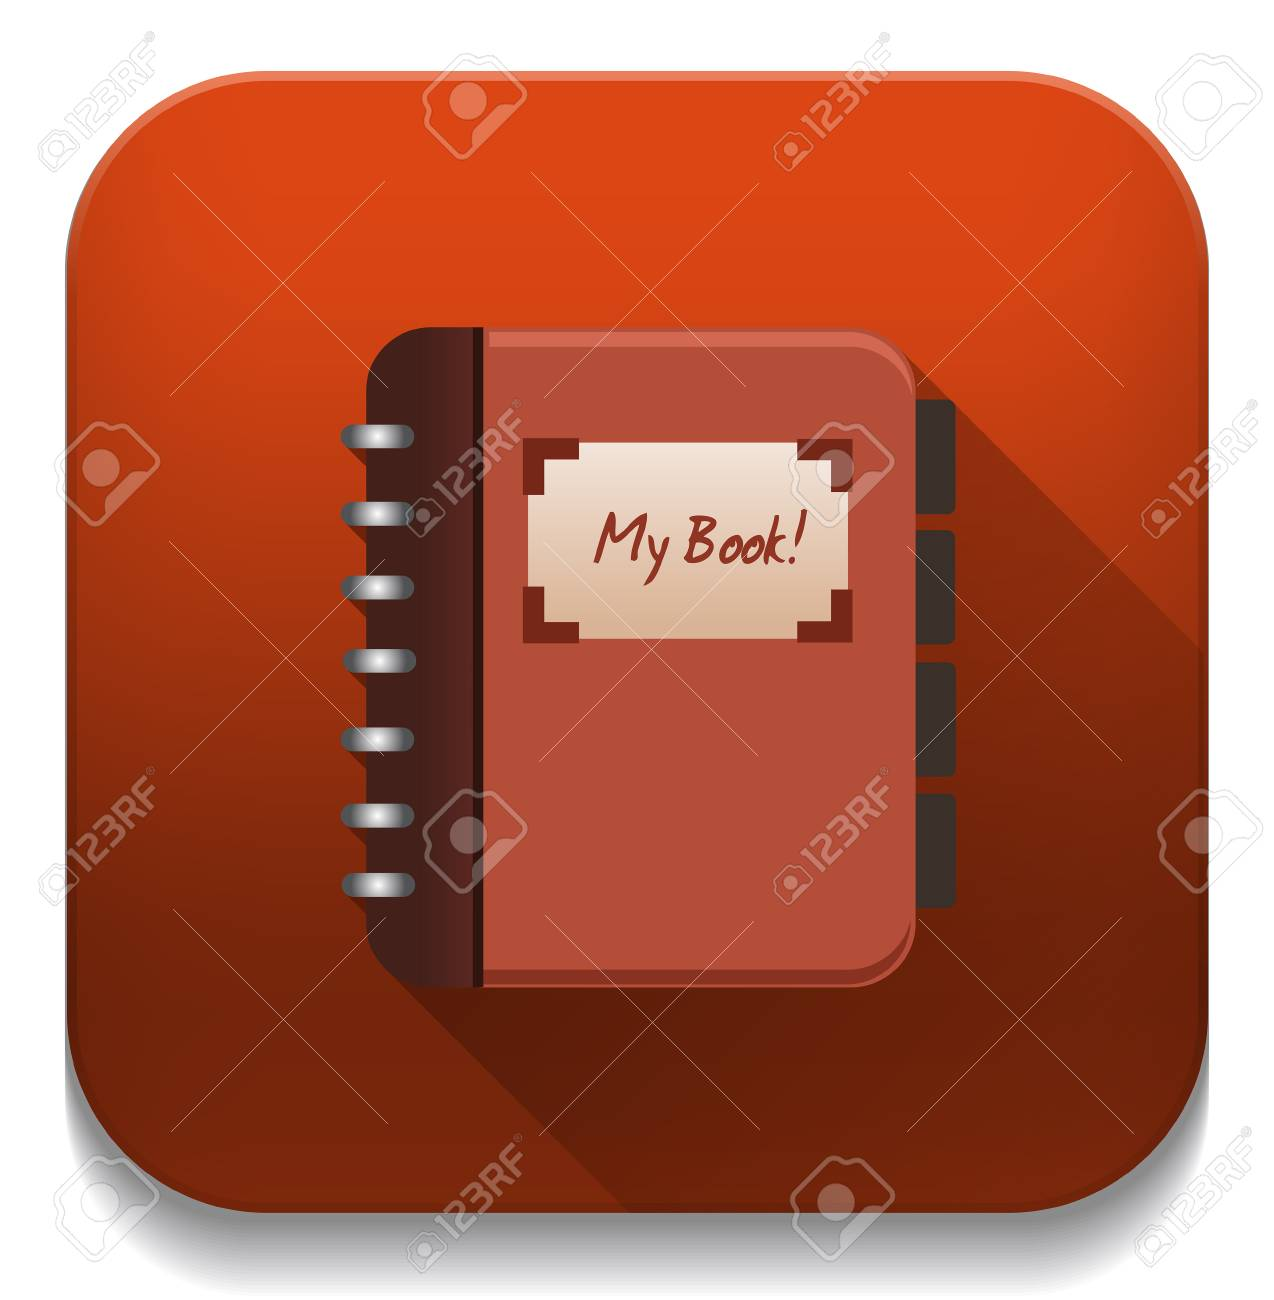 address book icon with long shadow over app button royalty free